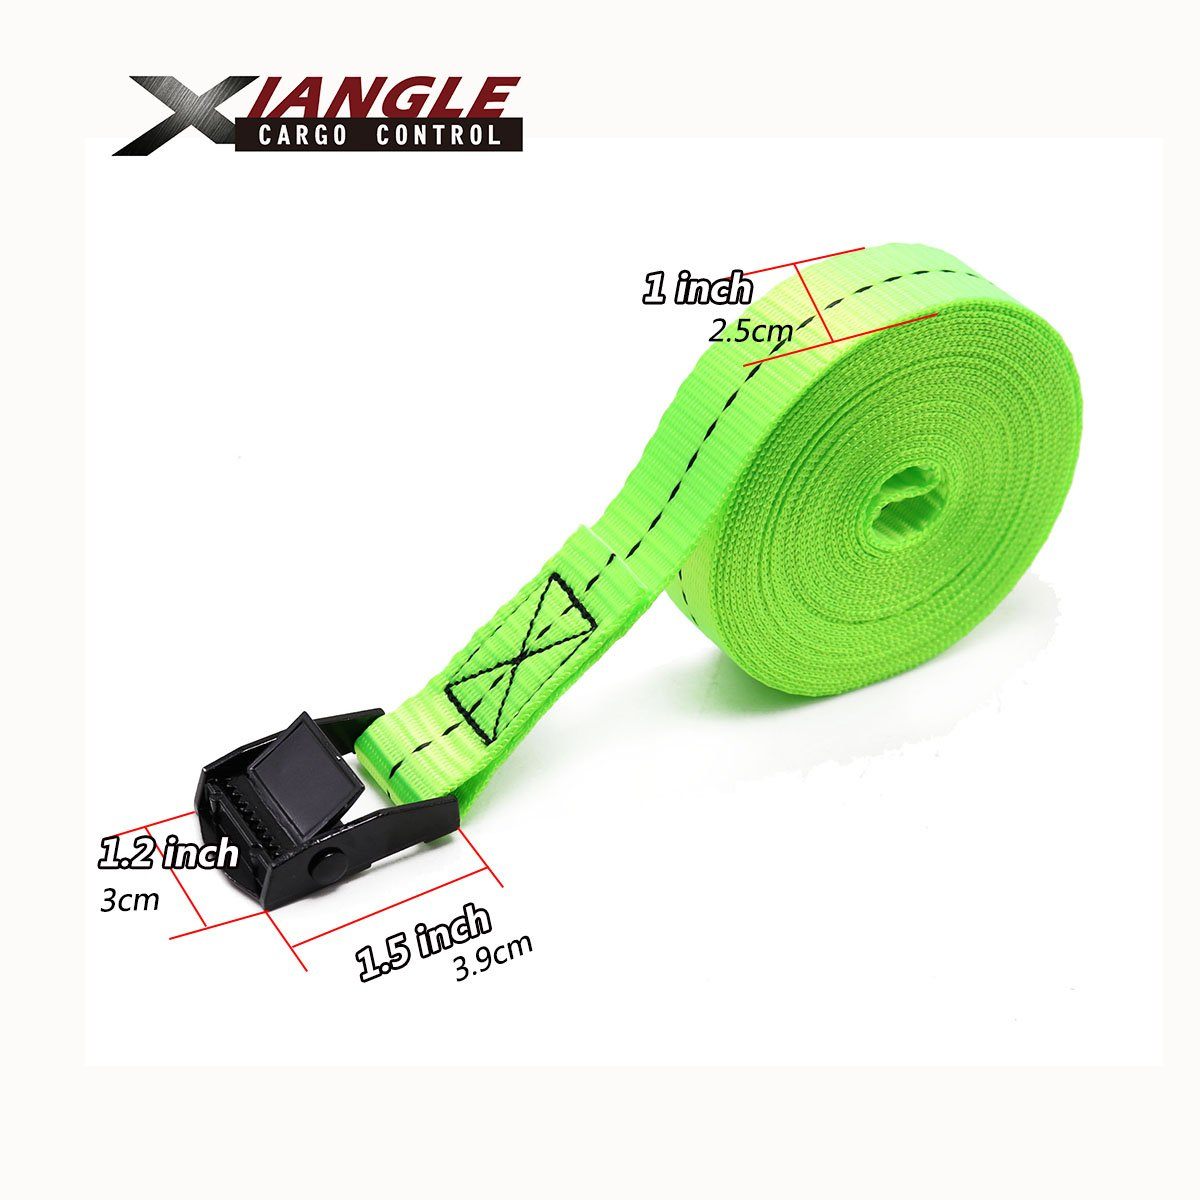 Xiangle Cam Buckle Lashing Strap Tie Down Straps 16-foot-by-1-inch 2PACK for Kayaks 8FT, 2pk Green Canoes Carriers and Other Roof Mounted Luggage